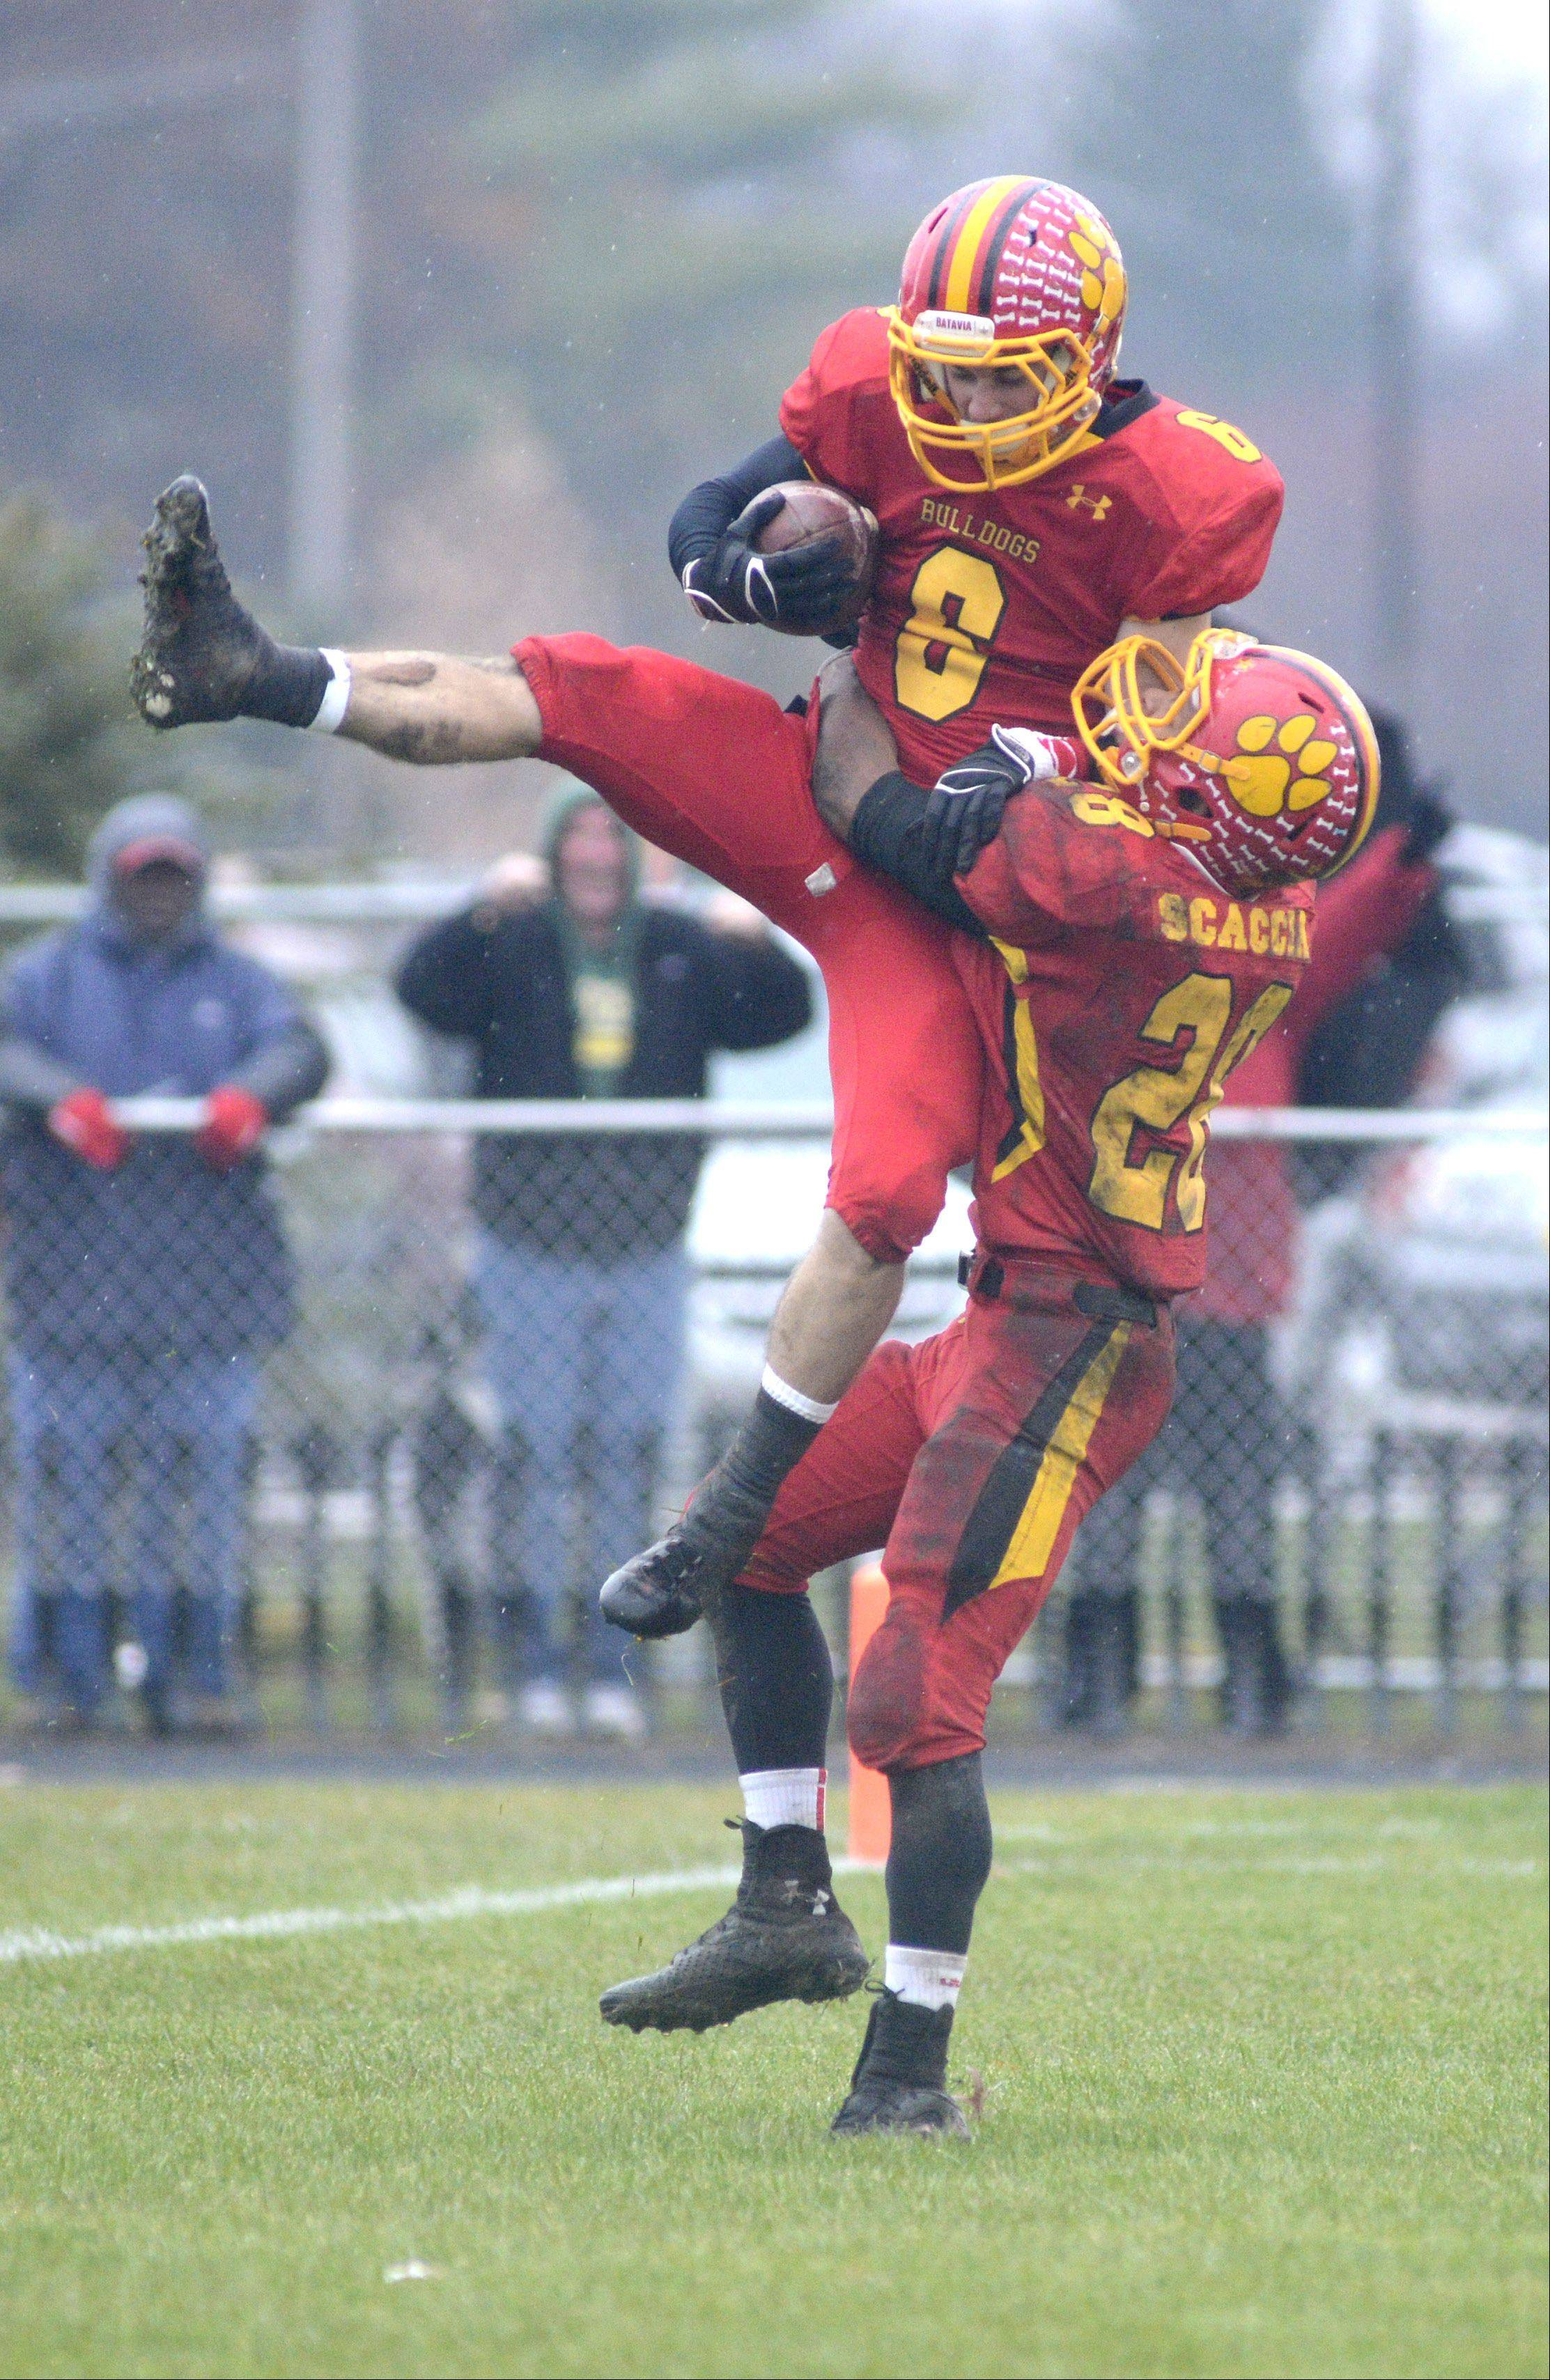 Batavia's Rouke Mullins is hoisted into the air by teammate Anthony Scaccia after scoring a touchdown in the third quarter over Lake Forest in the Class 6A quarterfinal on Saturday, November 16.